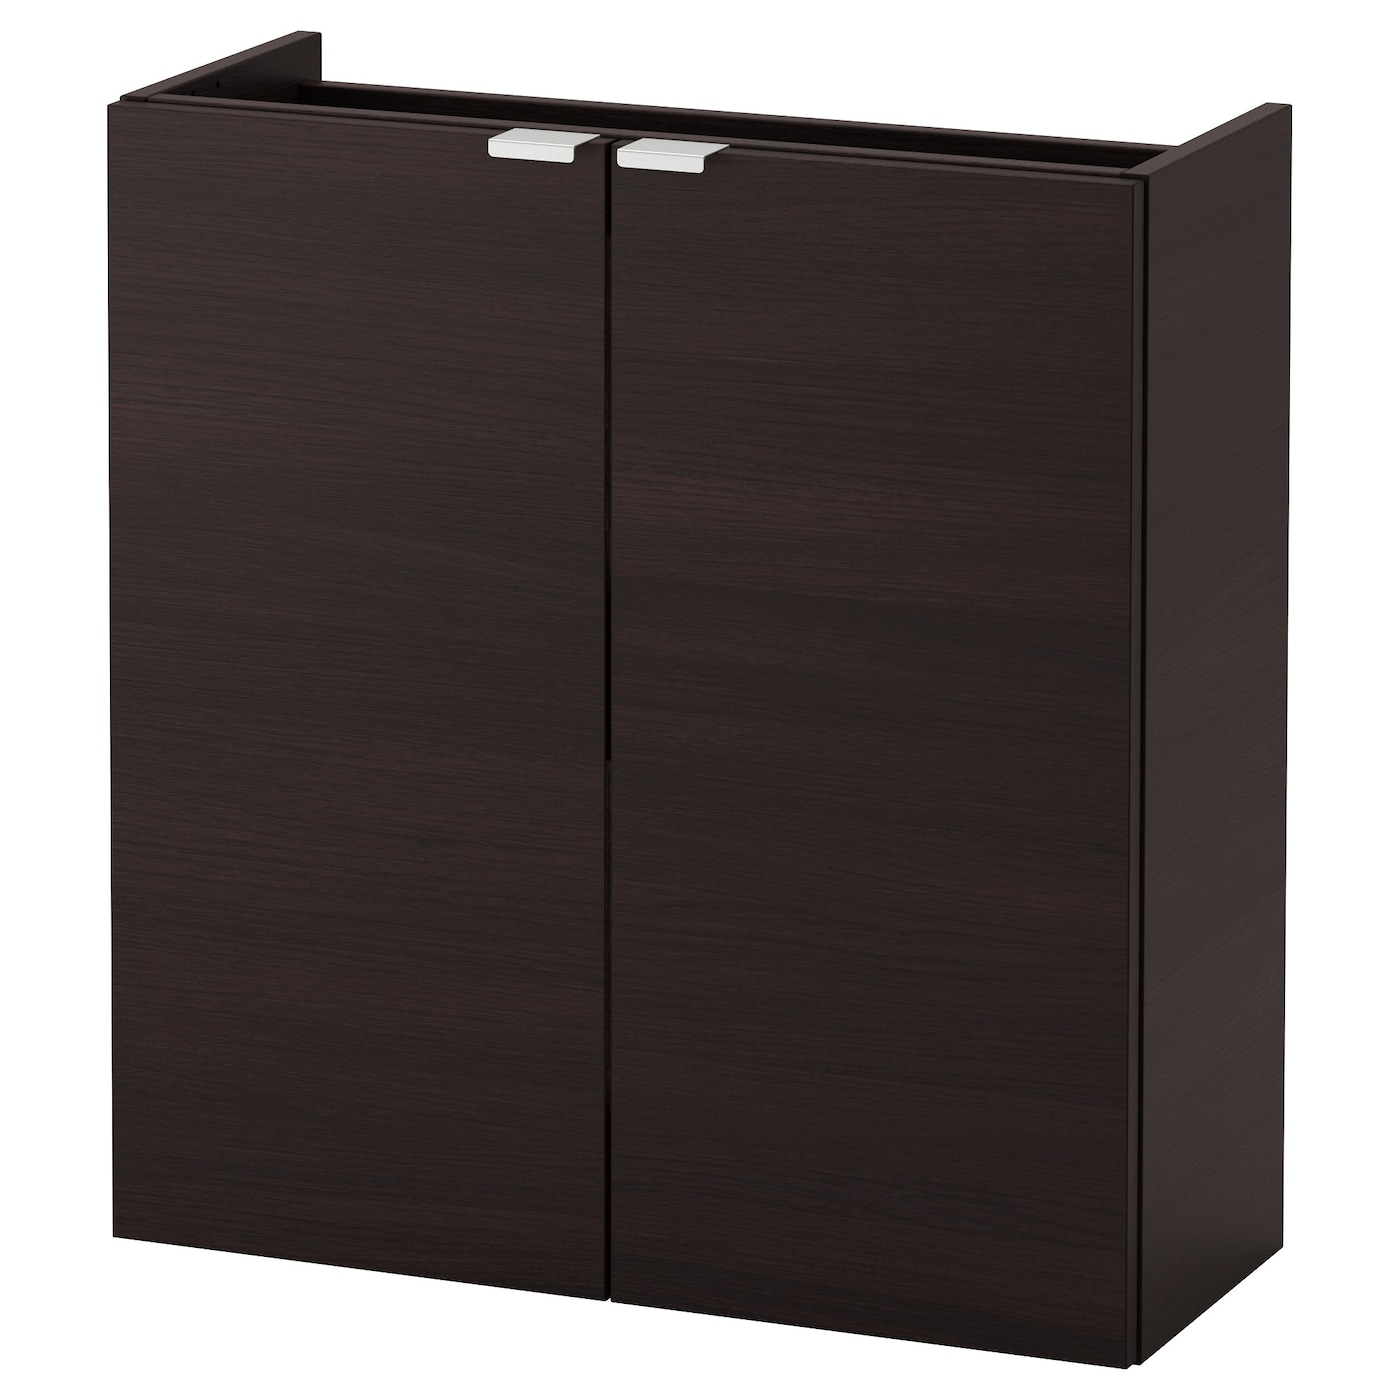 IKEA LILLÅNGEN wash-basin cabinet with 2 doors